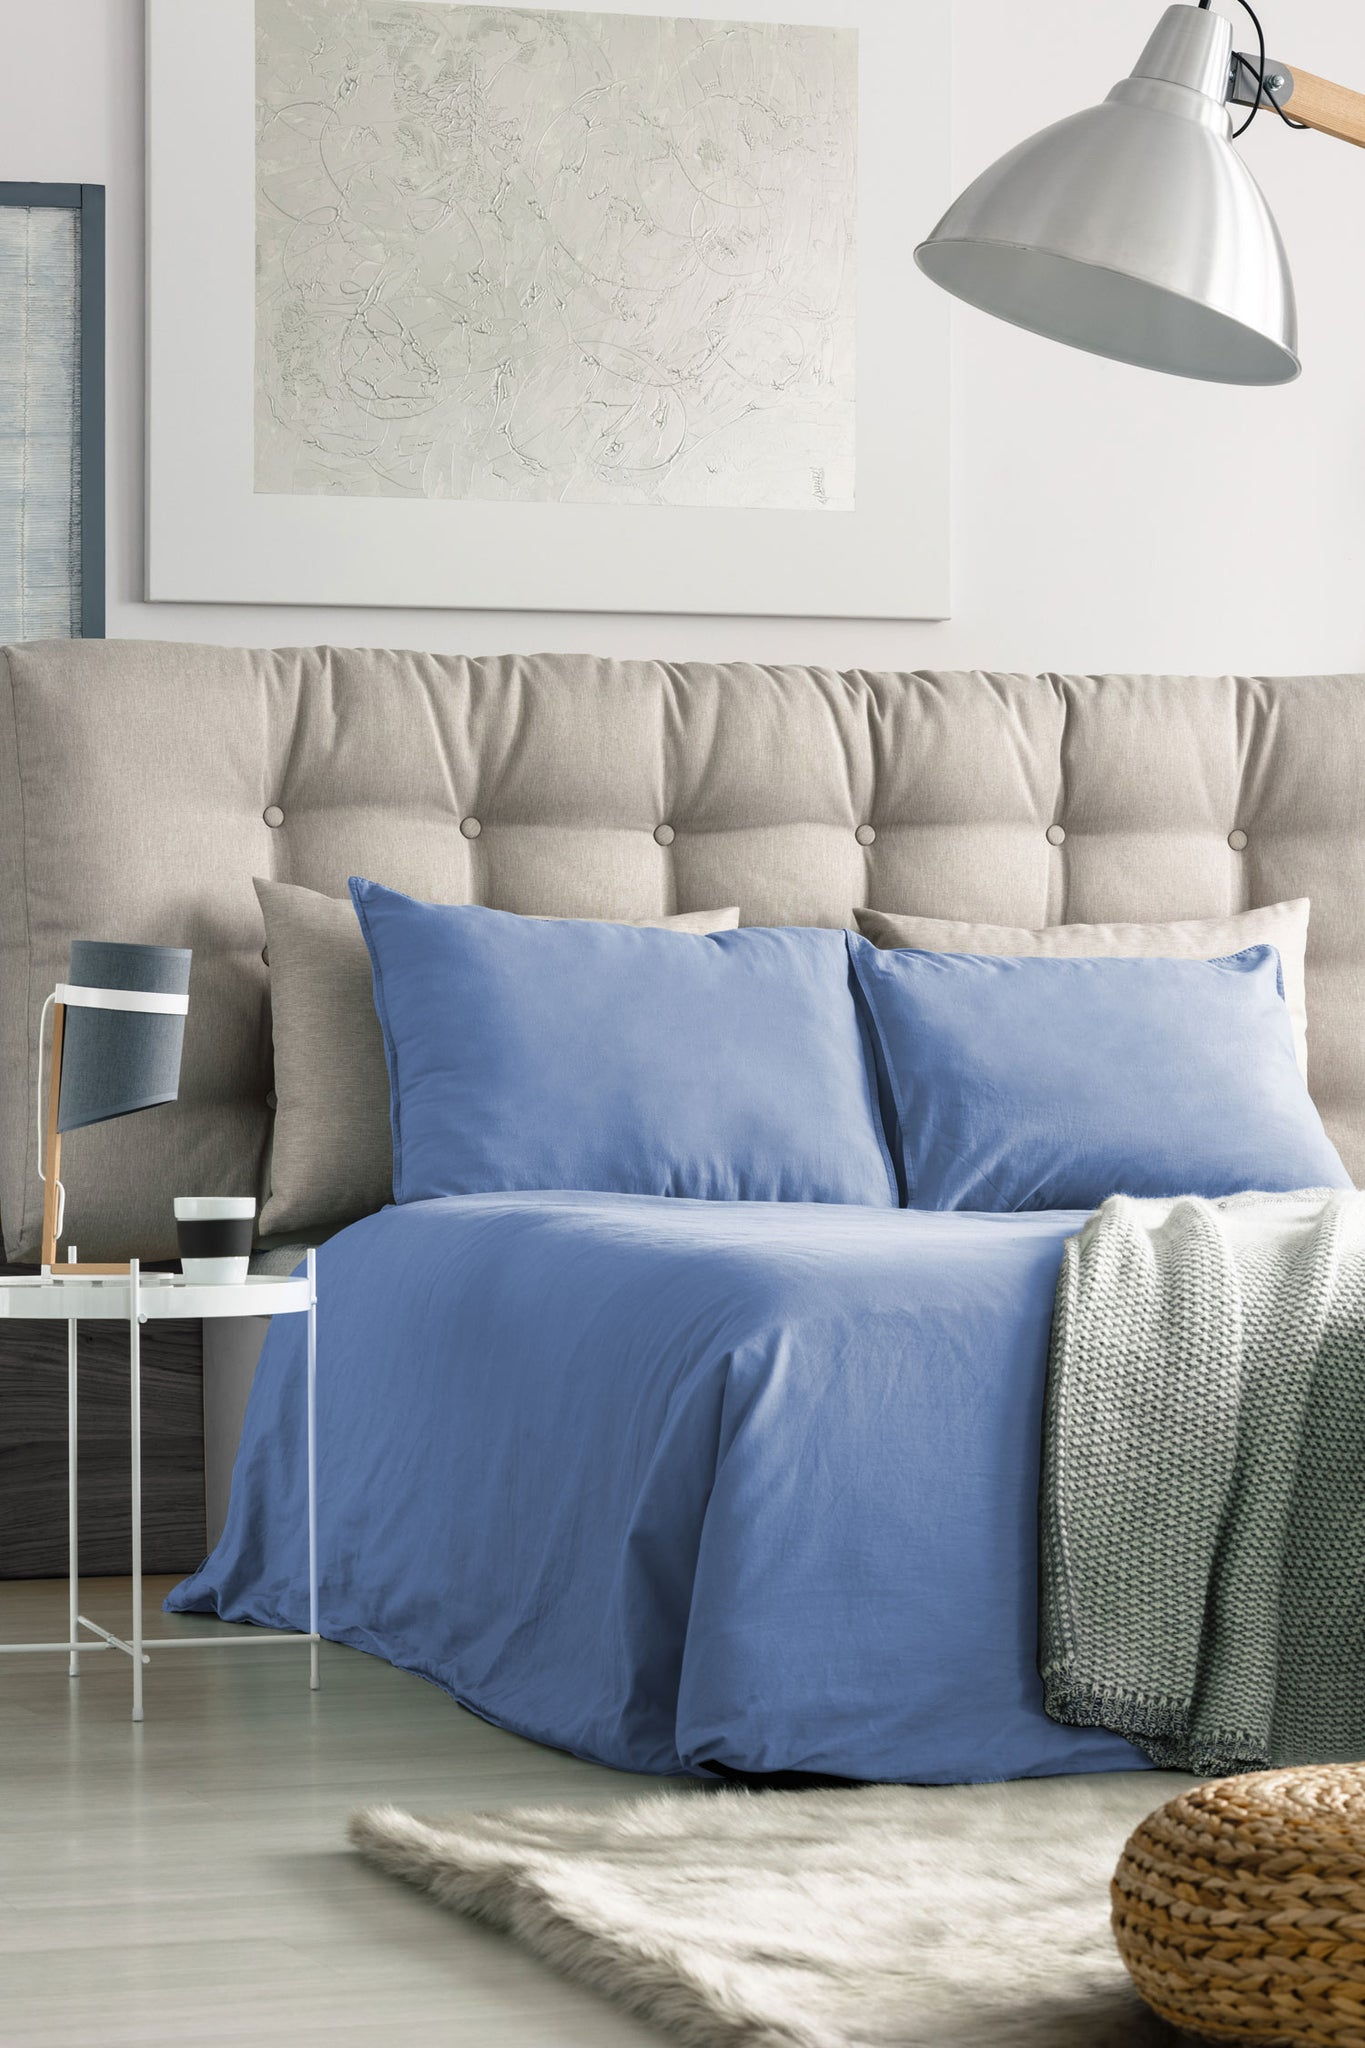 Bamboo Bed Sheets High Quality Organic Bamboo Light Blue Bed Sheet Set Hotel Sheets Direct